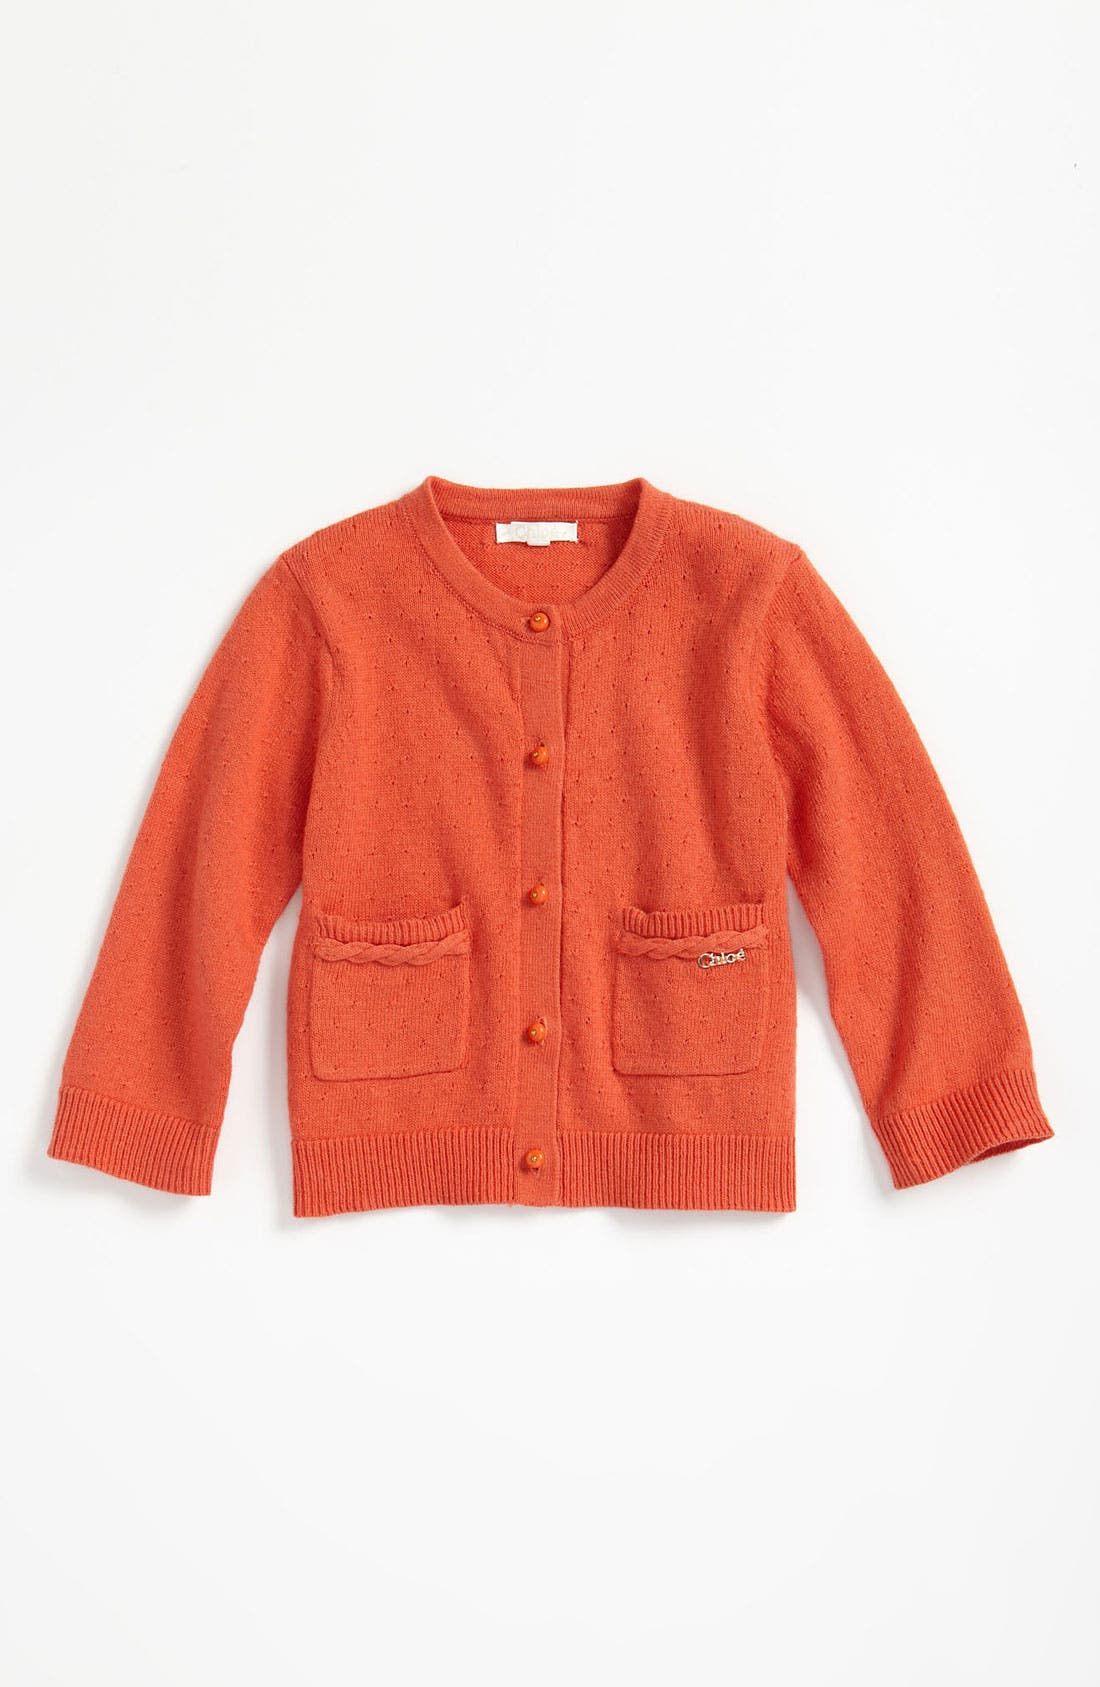 Alternate Image 1 Selected - Chloé Pointelle Cardigan (Infant)